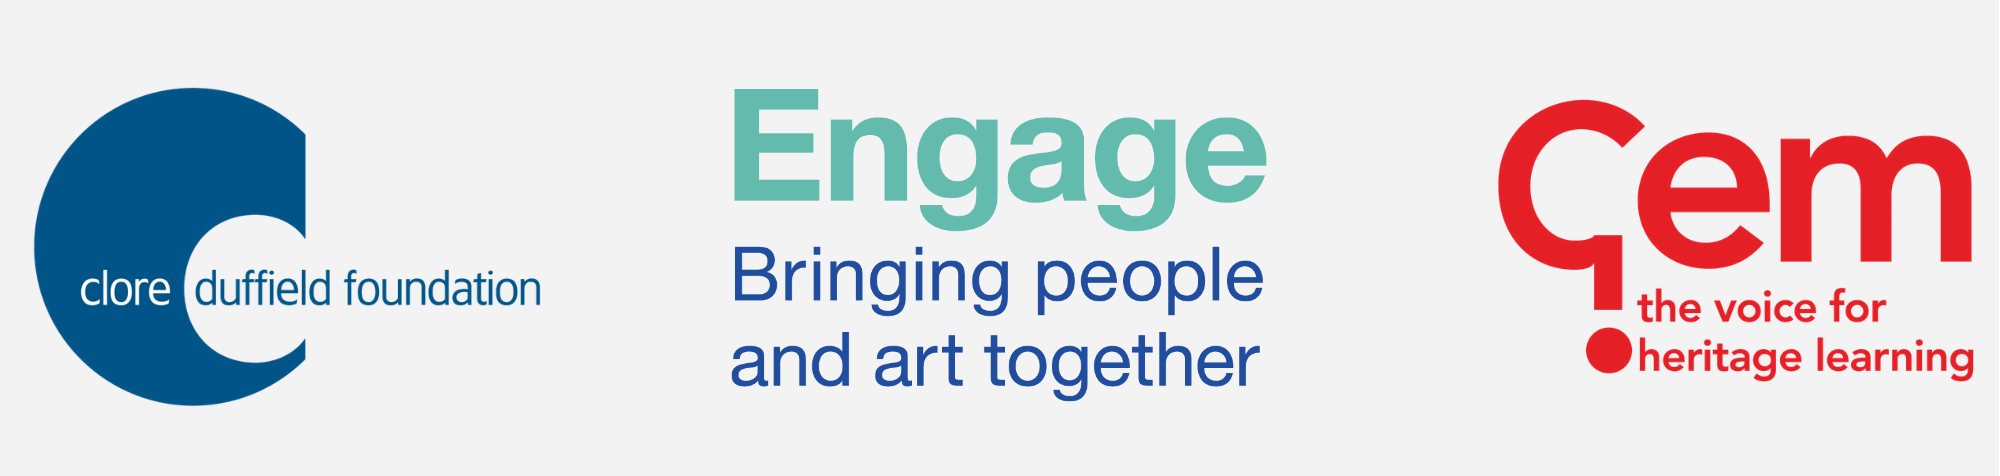 Clore Duffield Foundation, Engage and GEM logos